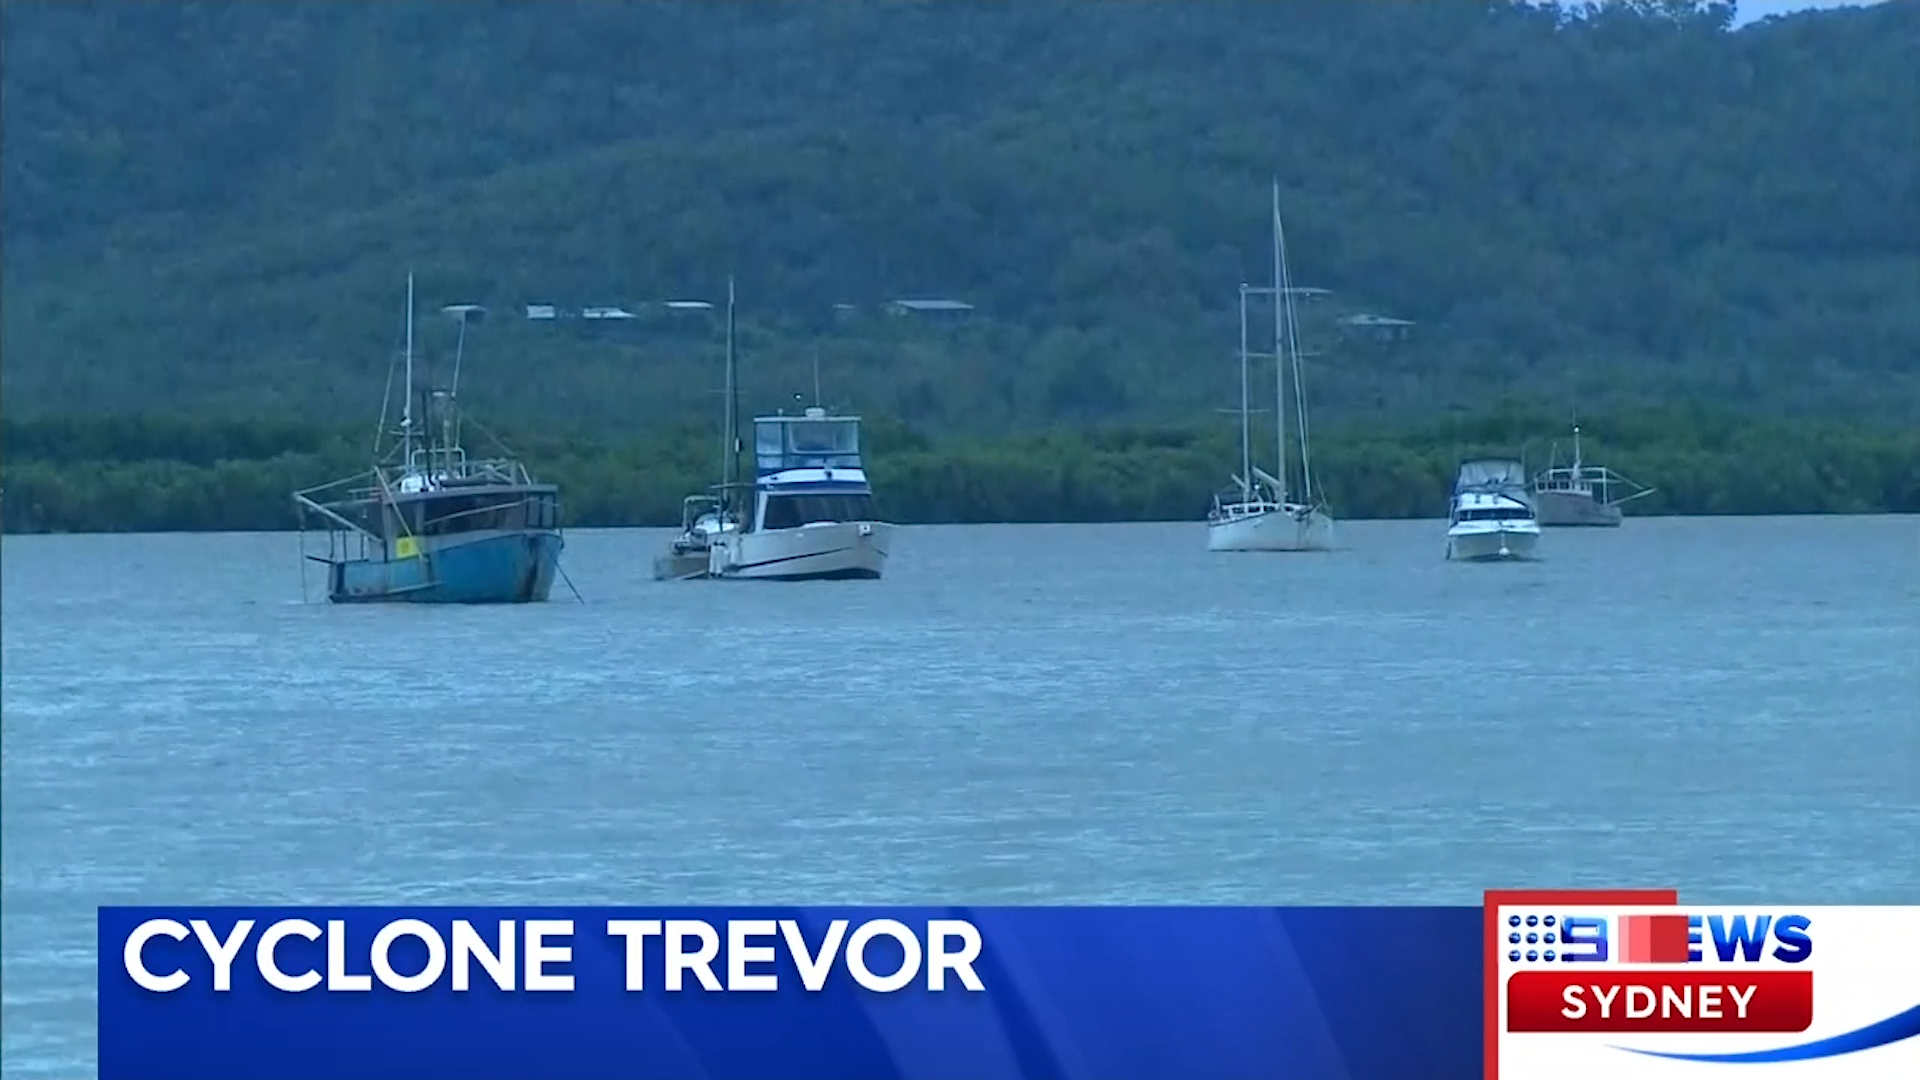 Premier Annastacia Palaszczuk on Tropical Cyclone Trevor